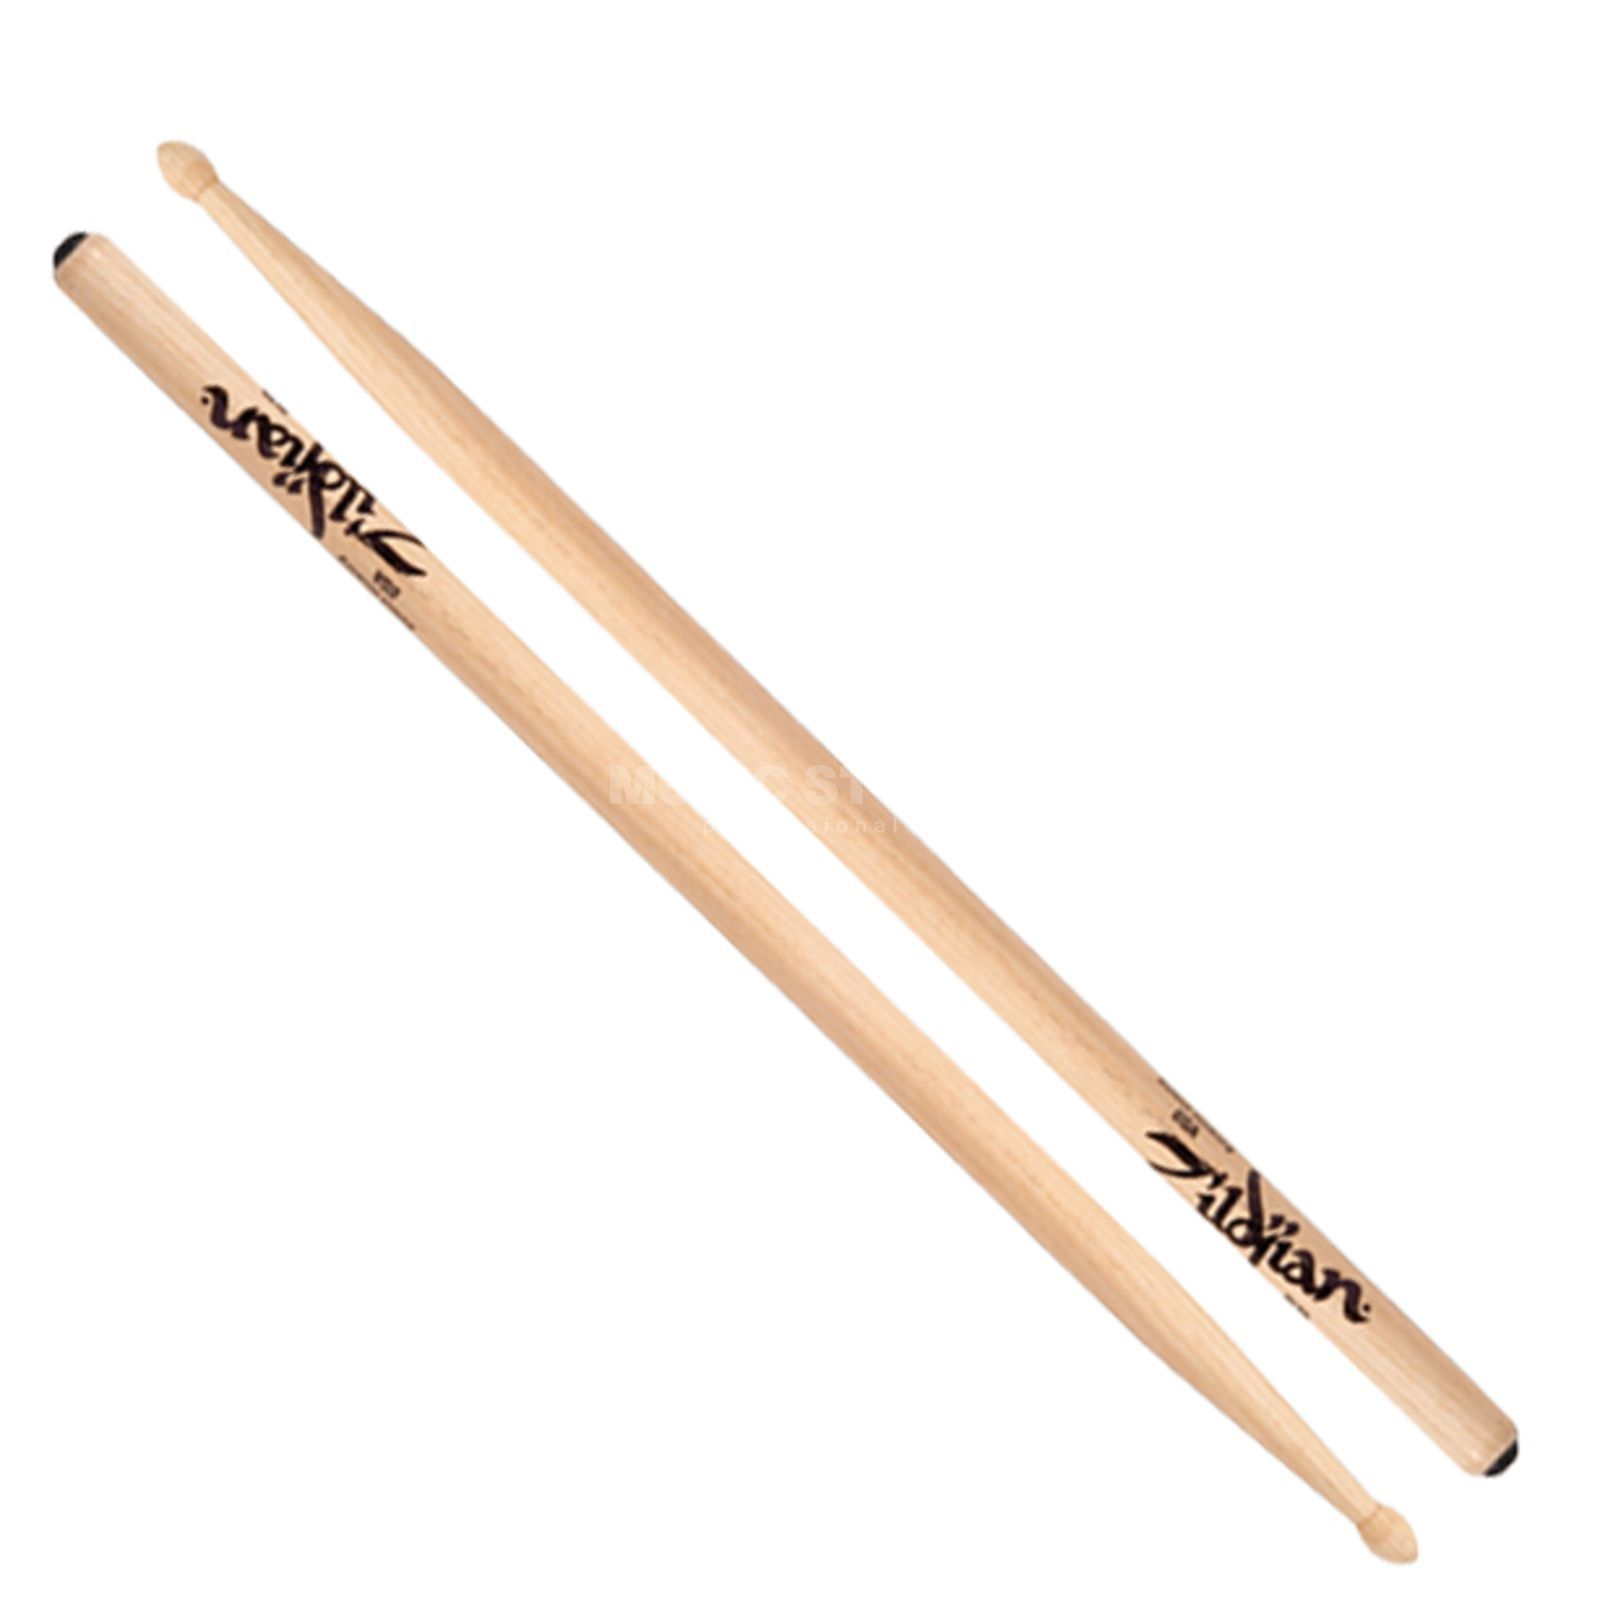 Zildjian Anti-Vibe 5B Sticks, Wood Tip Produktbild